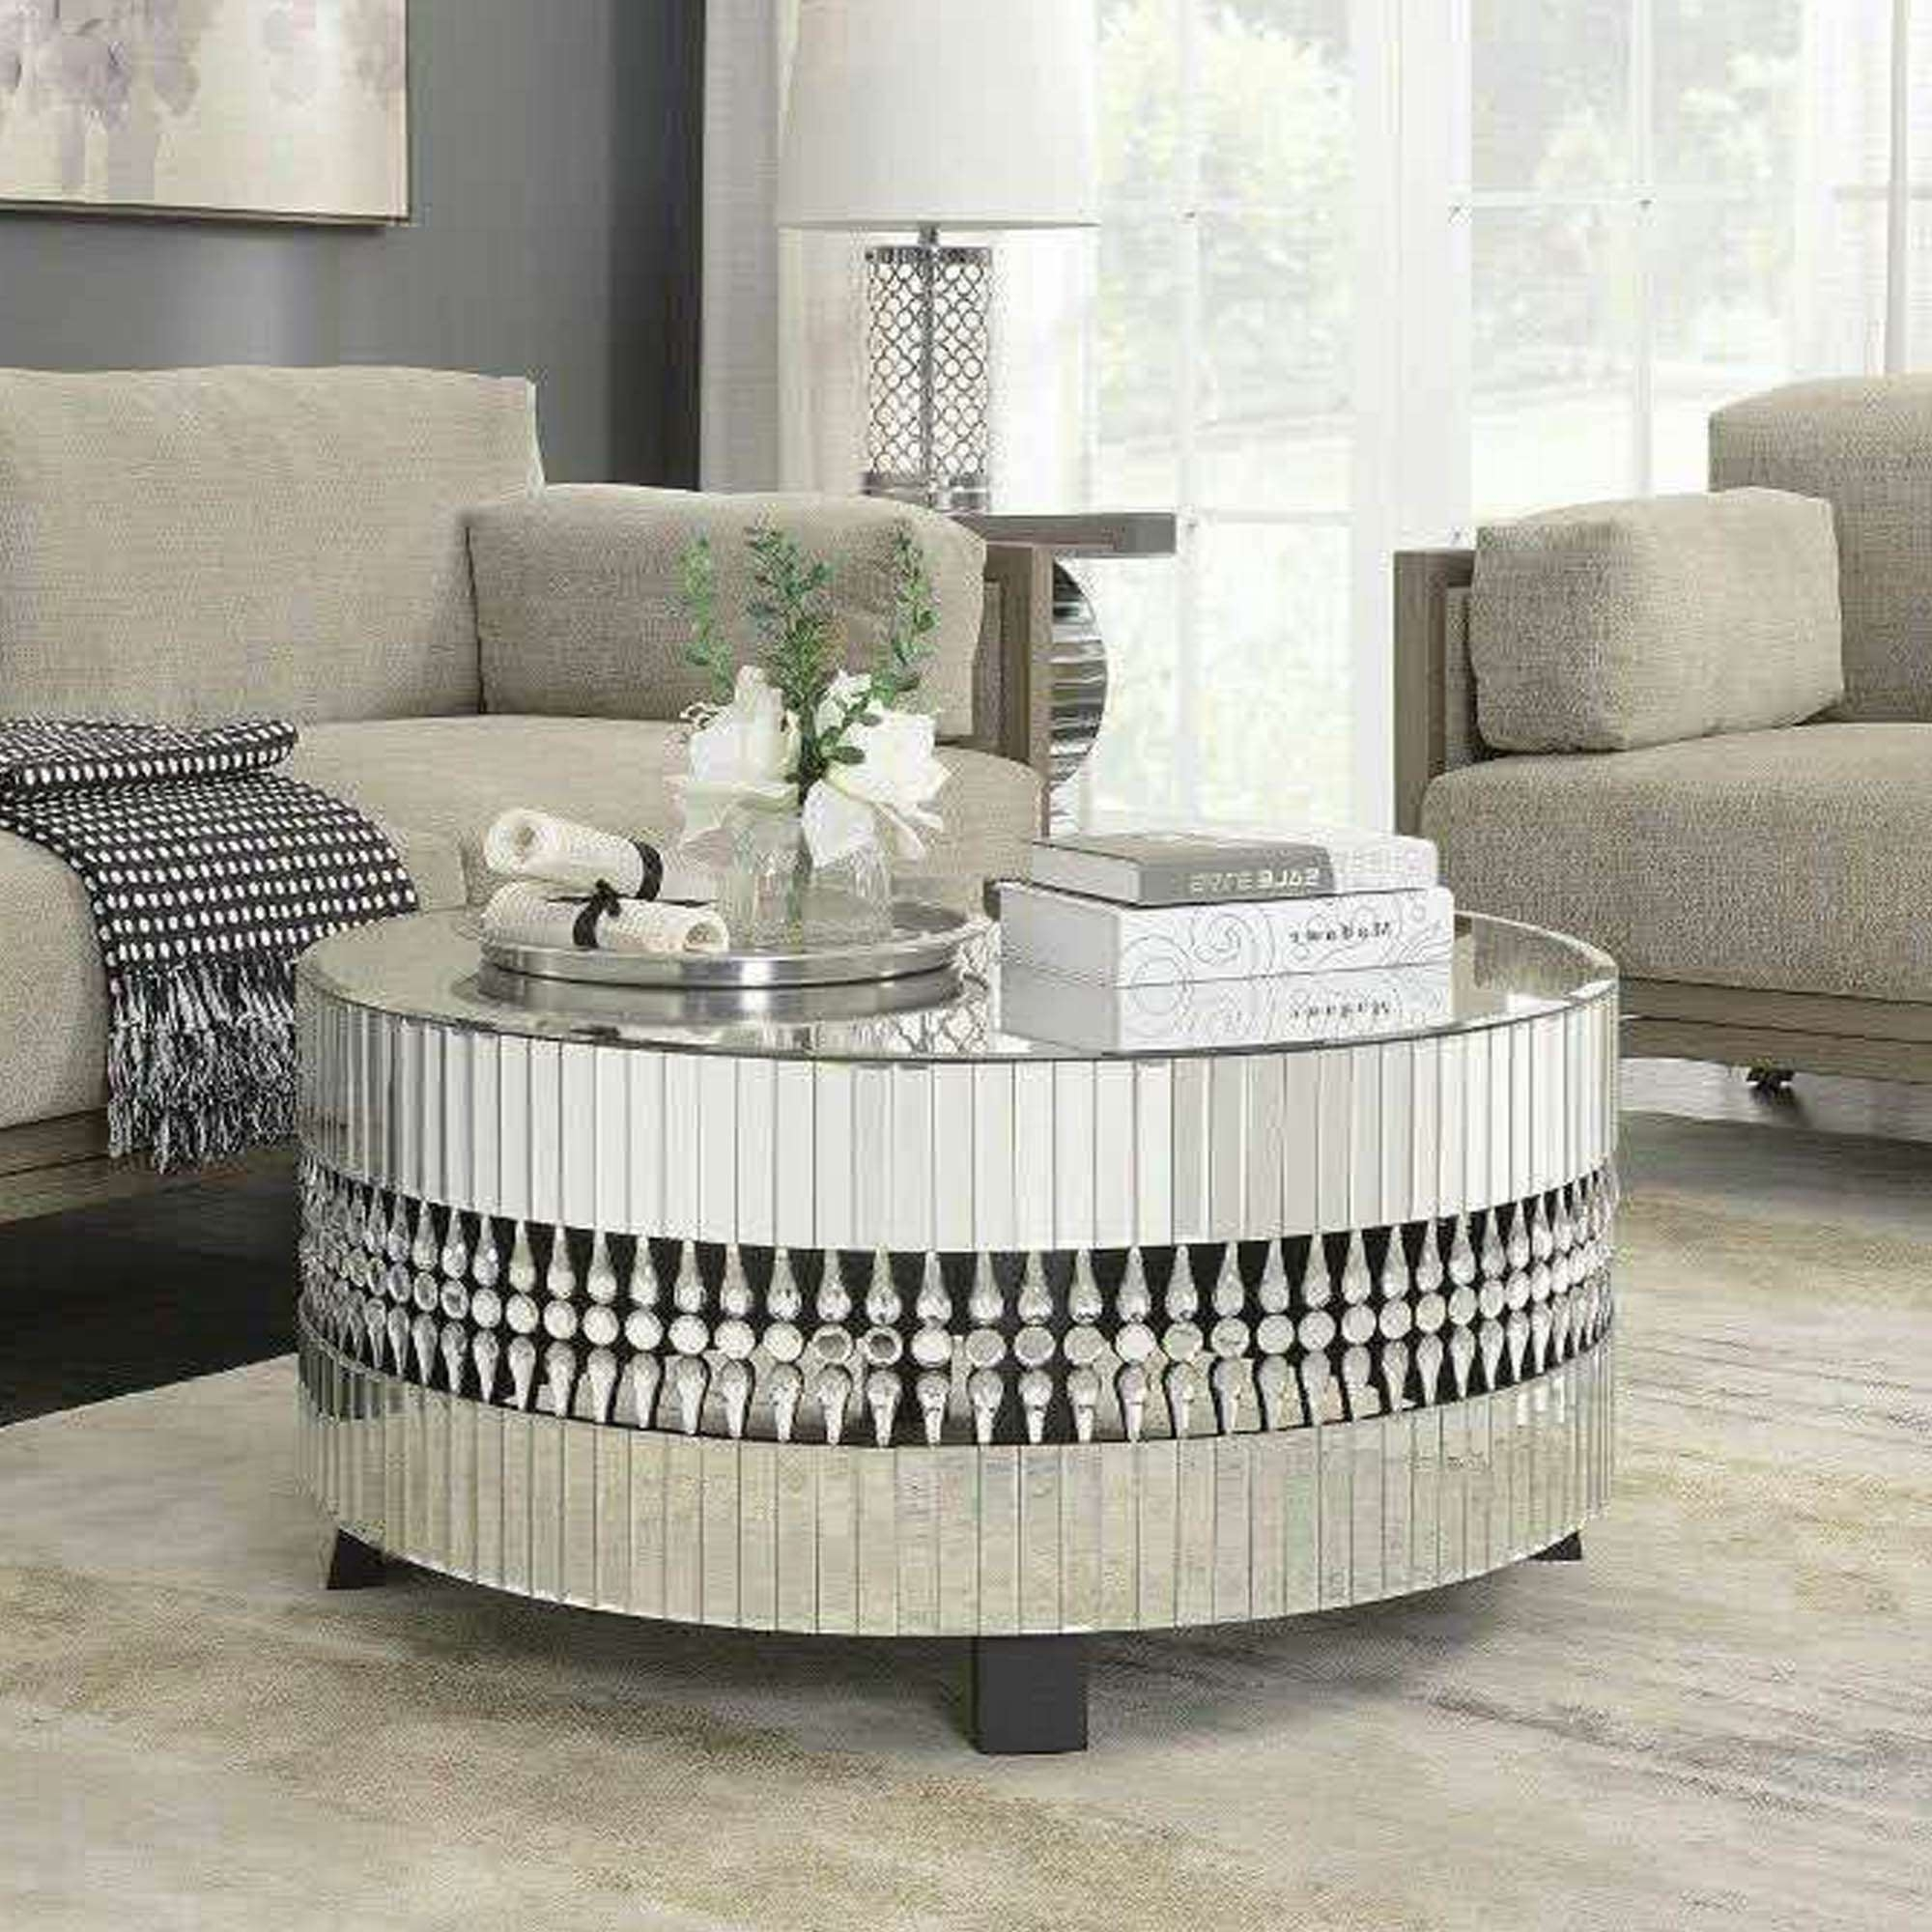 Coffee Table : Mirrored Coffee Table To Simplicity Yet Glamorous Within Most Current Coffee Tables Mirrored (View 8 of 20)